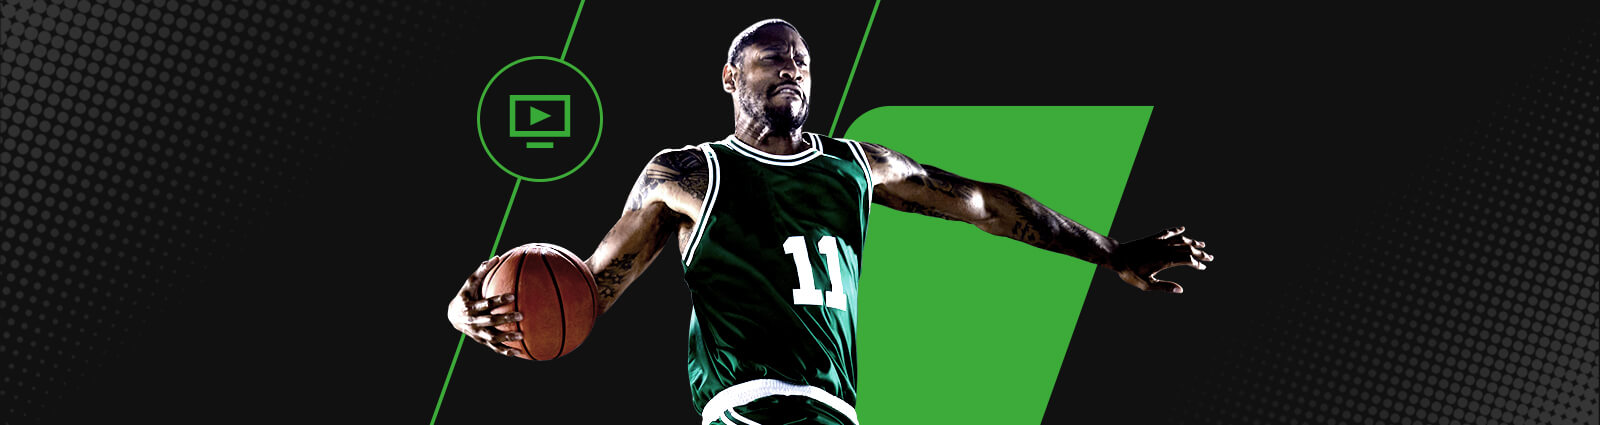 Promo page nba betting champs un BE